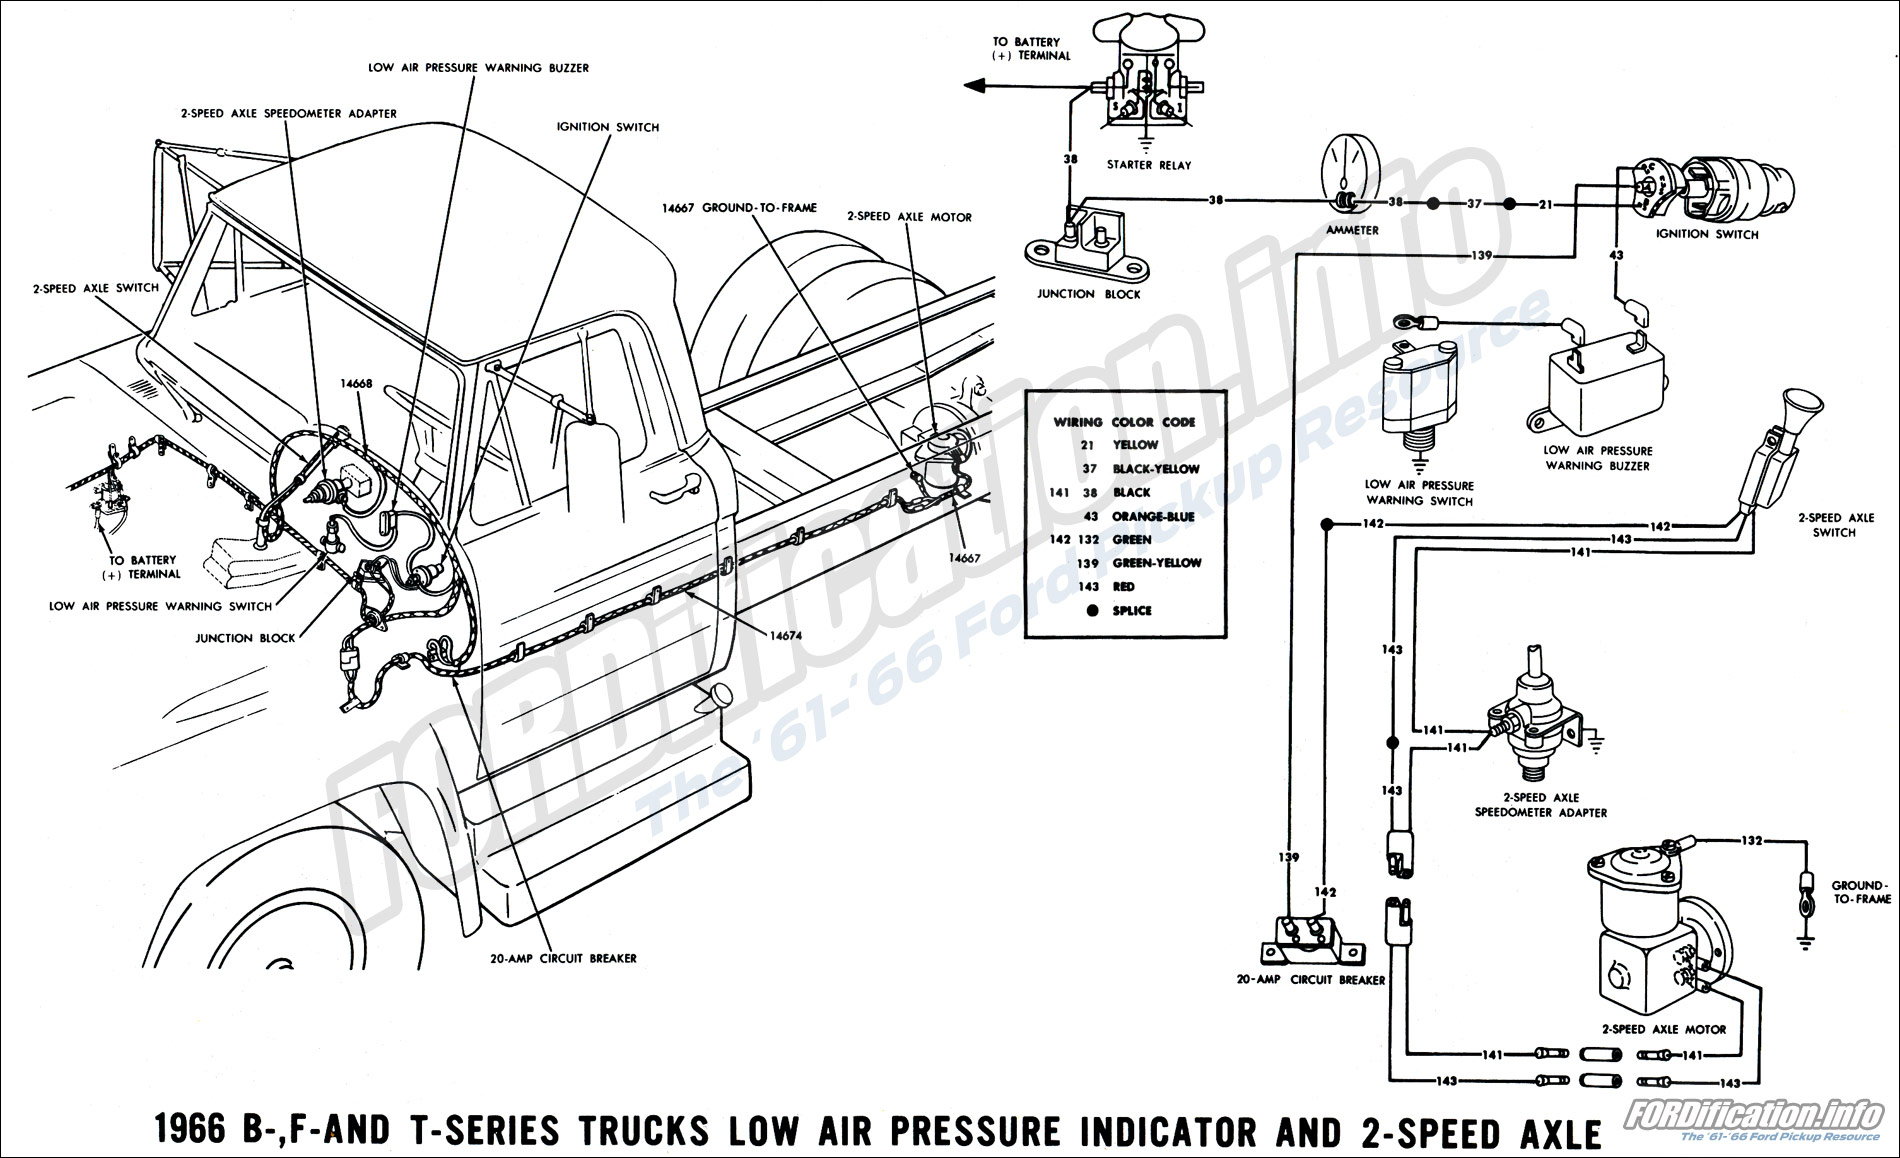 wiring diagrams for 1966 ford pick up v8 1966 ford truck wiring diagrams - fordification.info - the ...